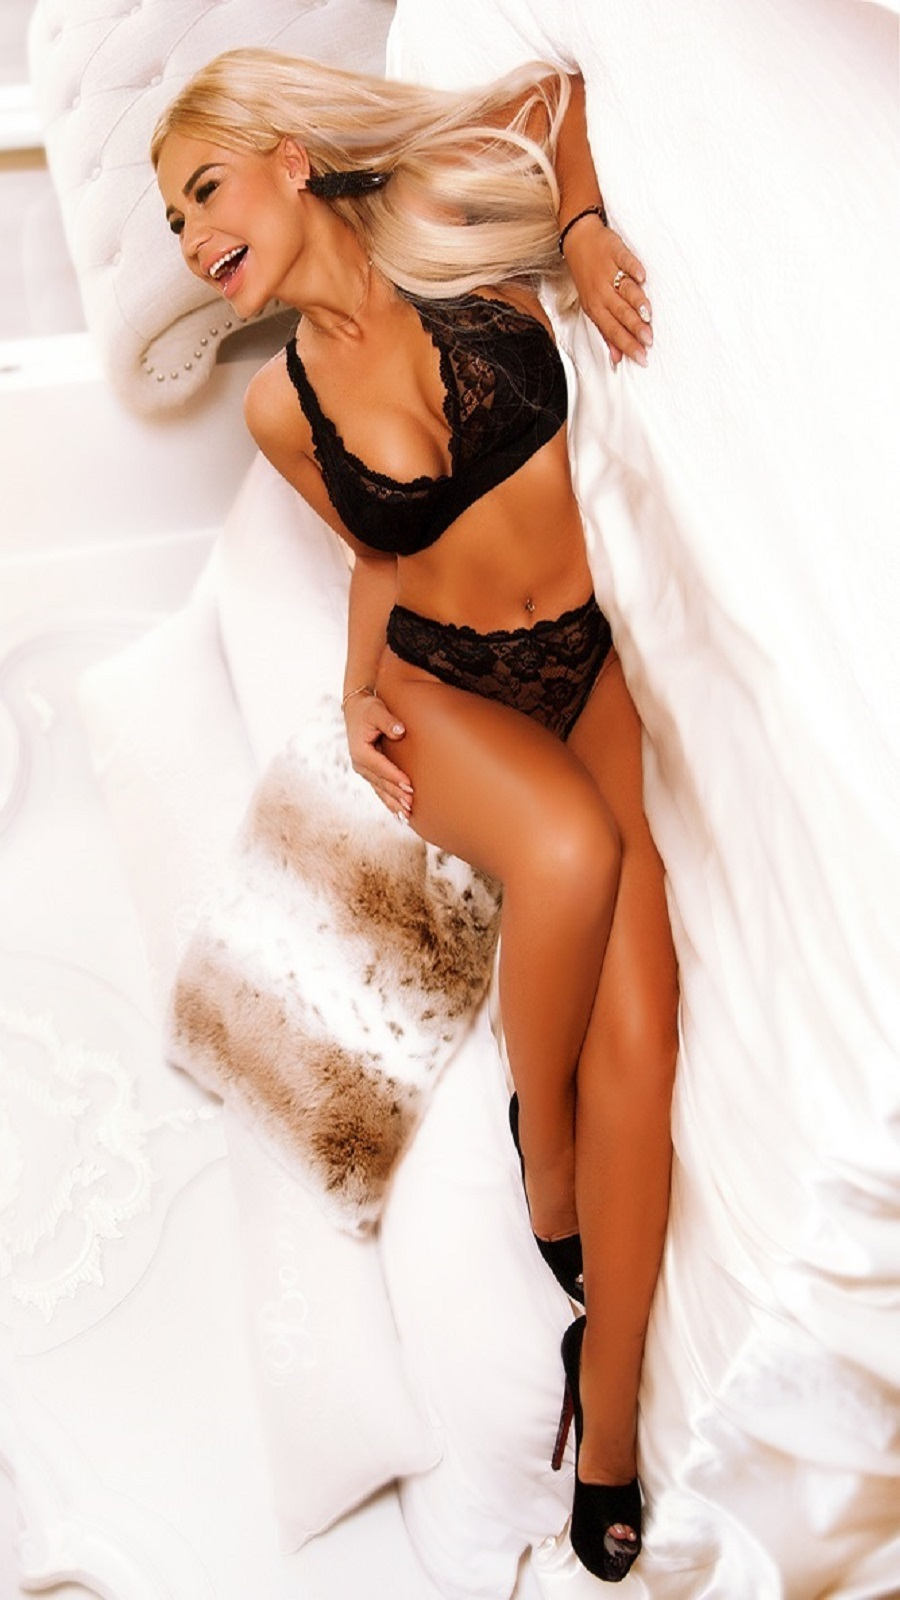 If you are looking for the perfect companion tonight give us a call on 07402724742 to book Shona for the best night of your life.